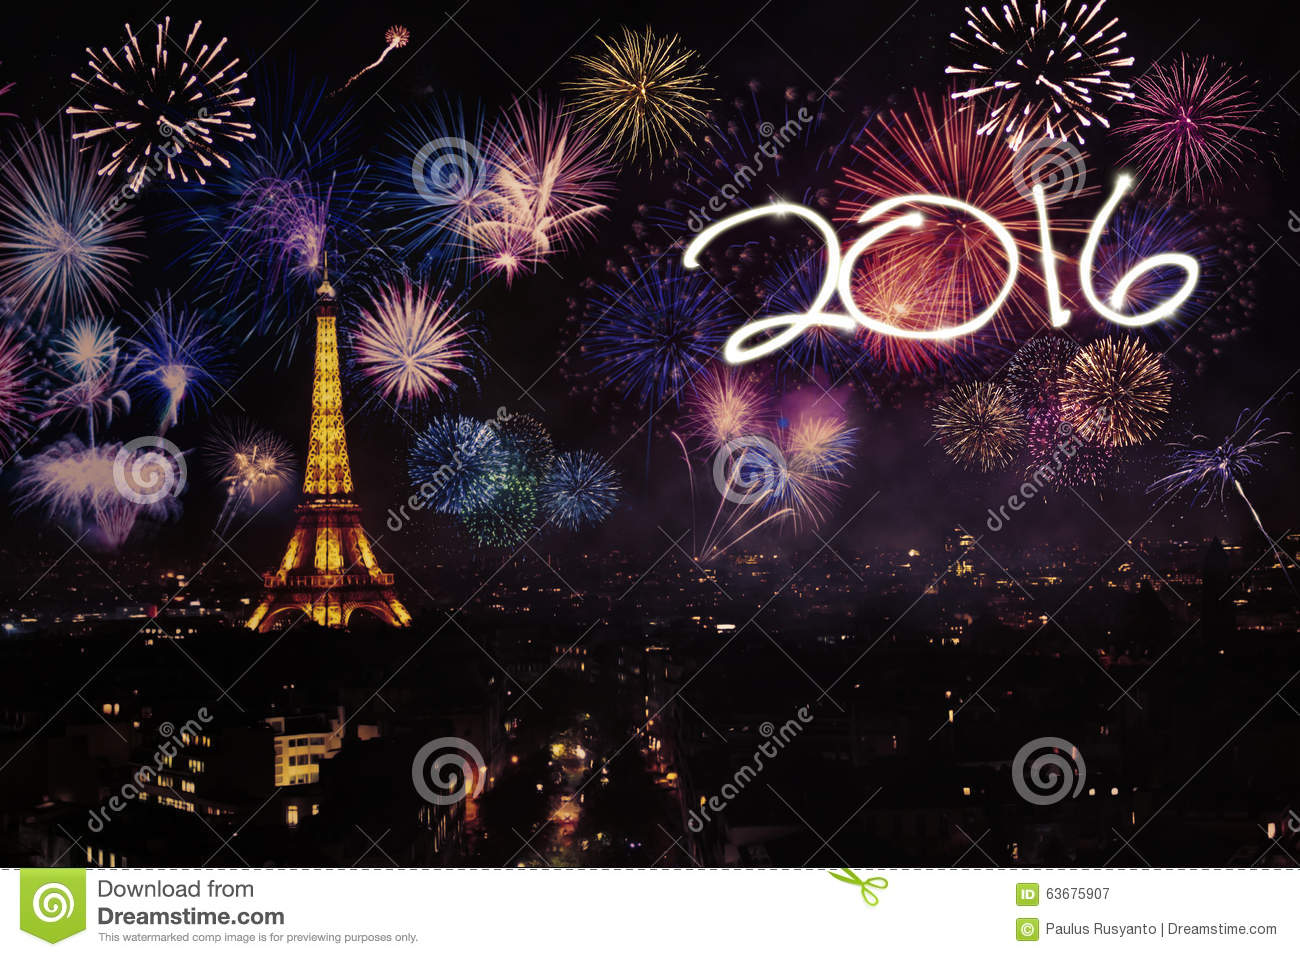 eiffel tower with fireworks and numbers 2016 stock image - image of